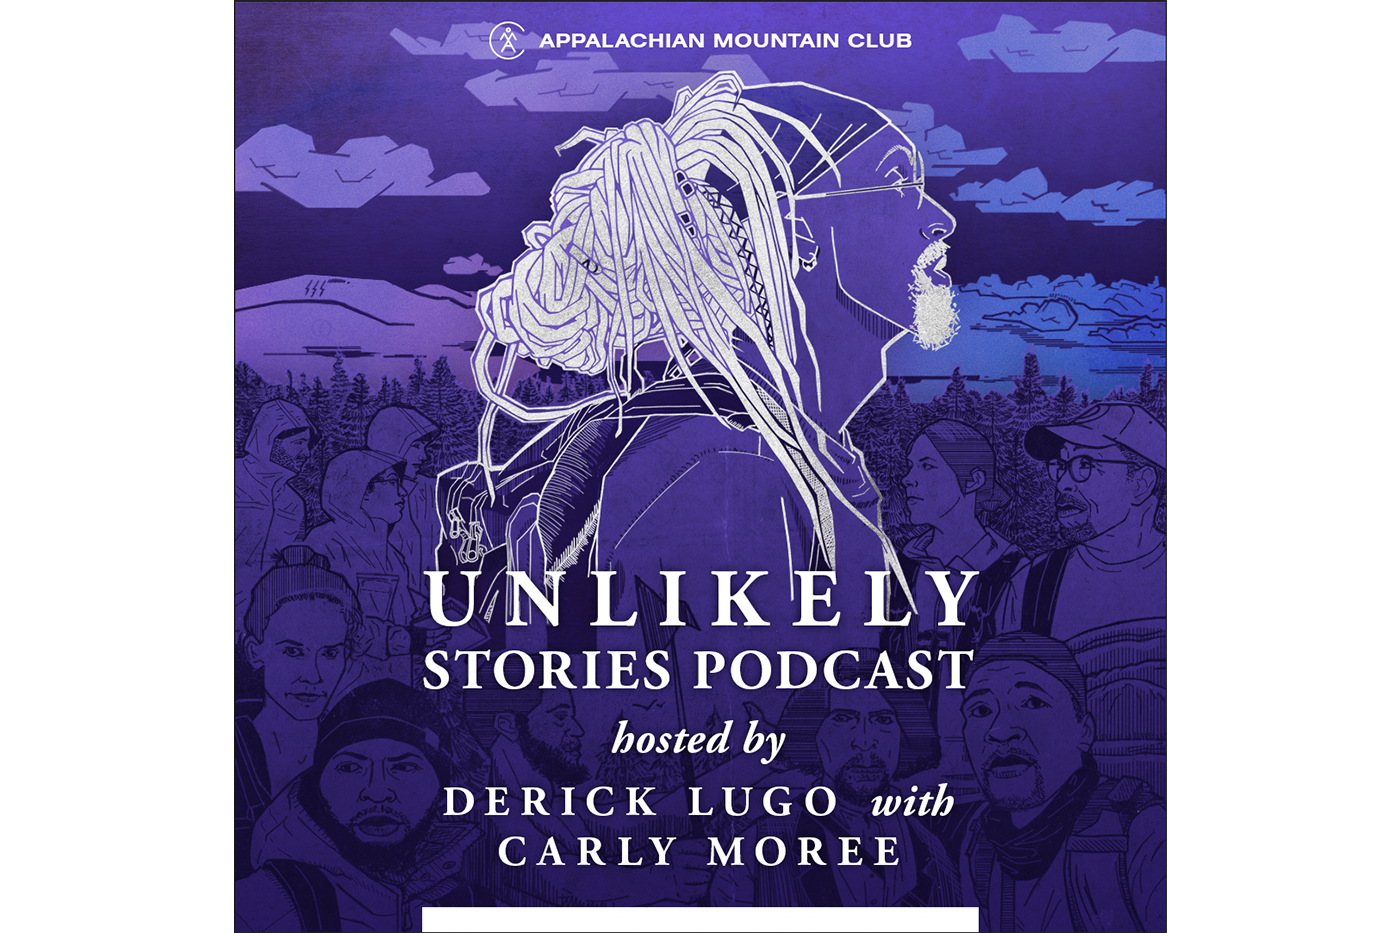 Unlikely Stories Podcast